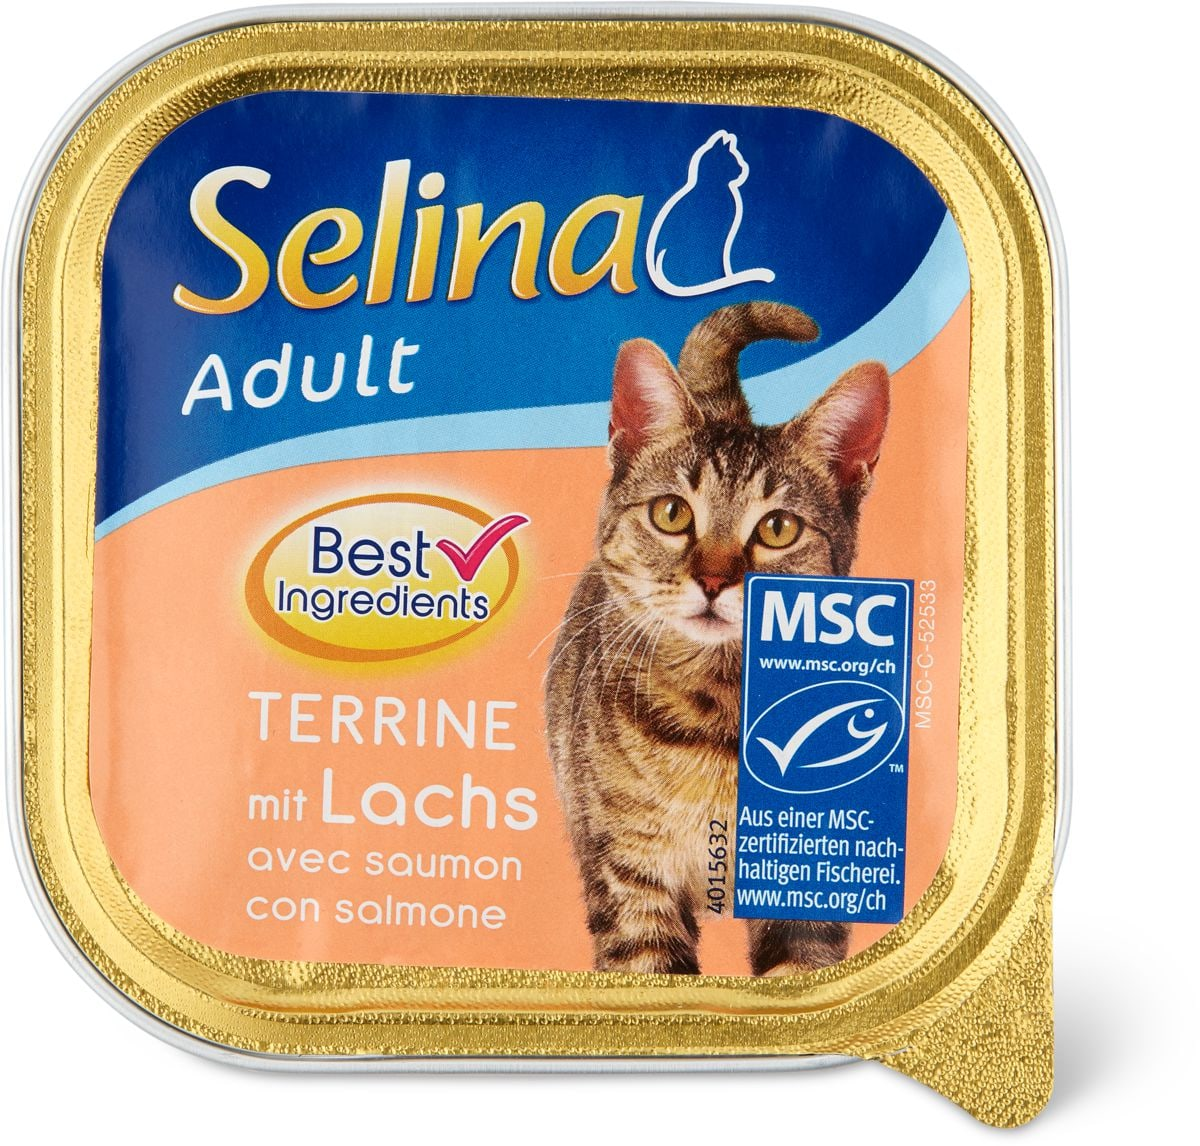 Selina MSC adult Terrine salmone